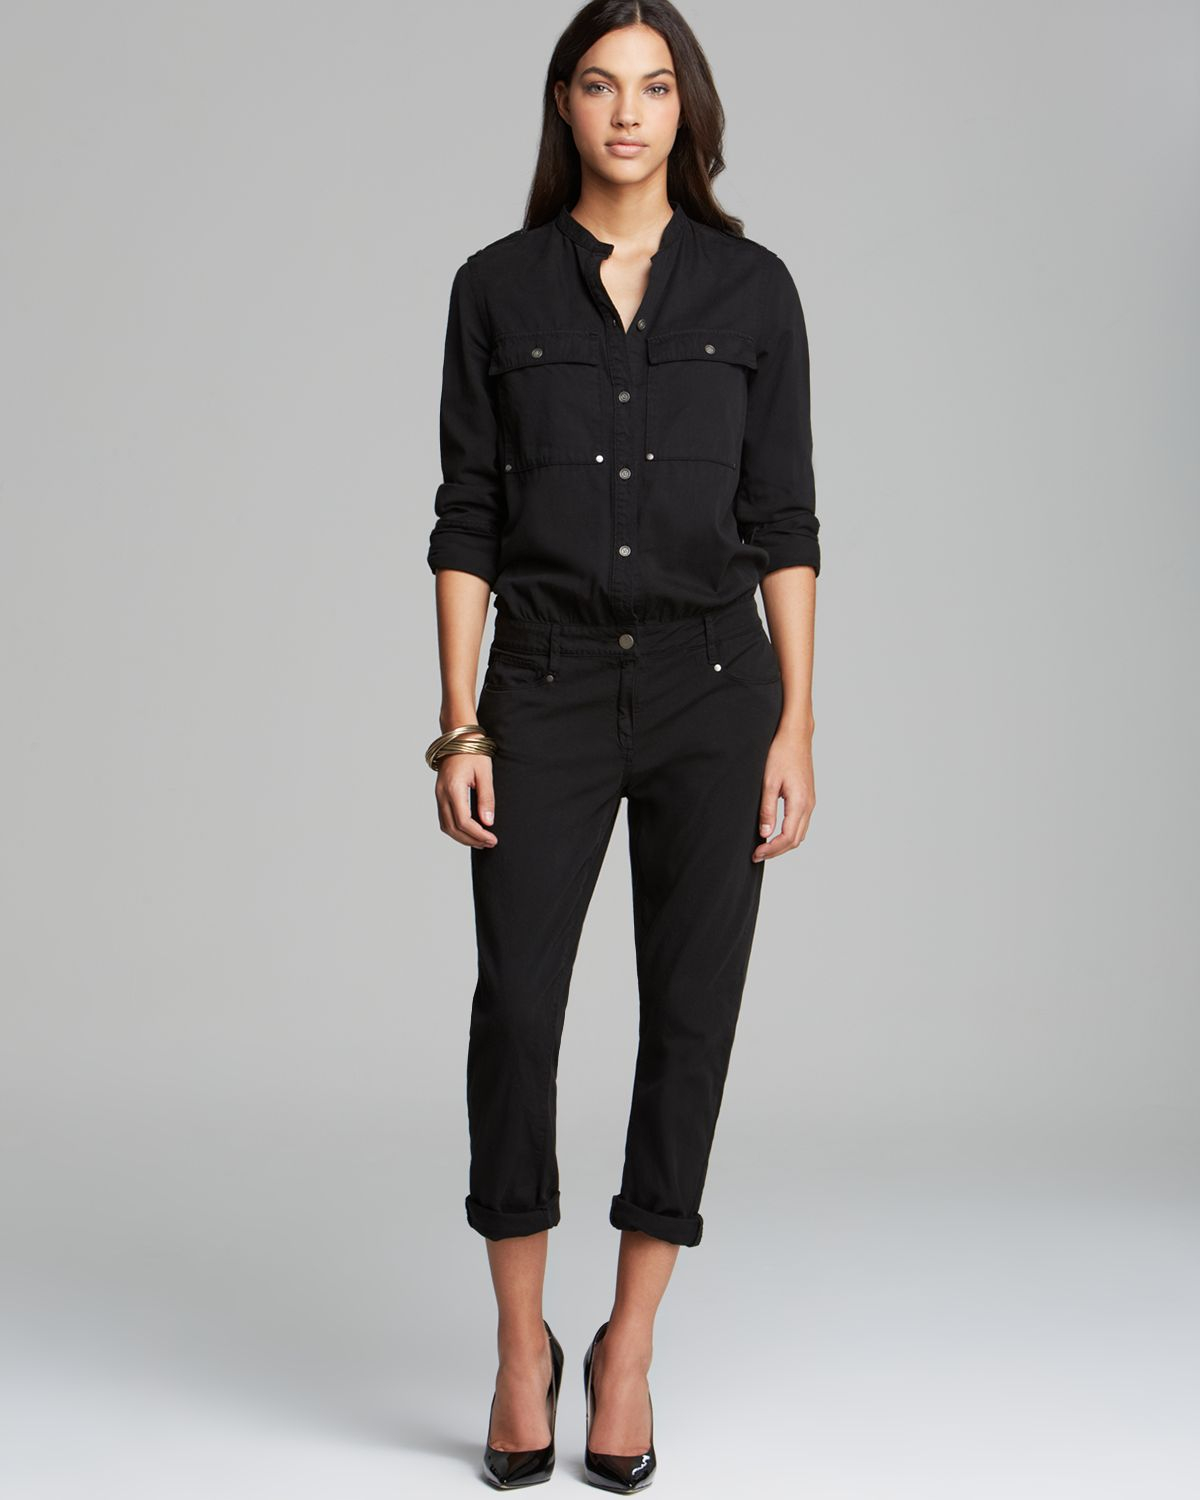 Swap in a sleek black jumpsuit for your go-to LBD and accessorize with glam gold accessories, throw on an easy silky romper with wedges or go sexy-edgy in a strapless one-piece that hugs every curve. With tailored blazers and pumps, jumpsuits can even work for the office.